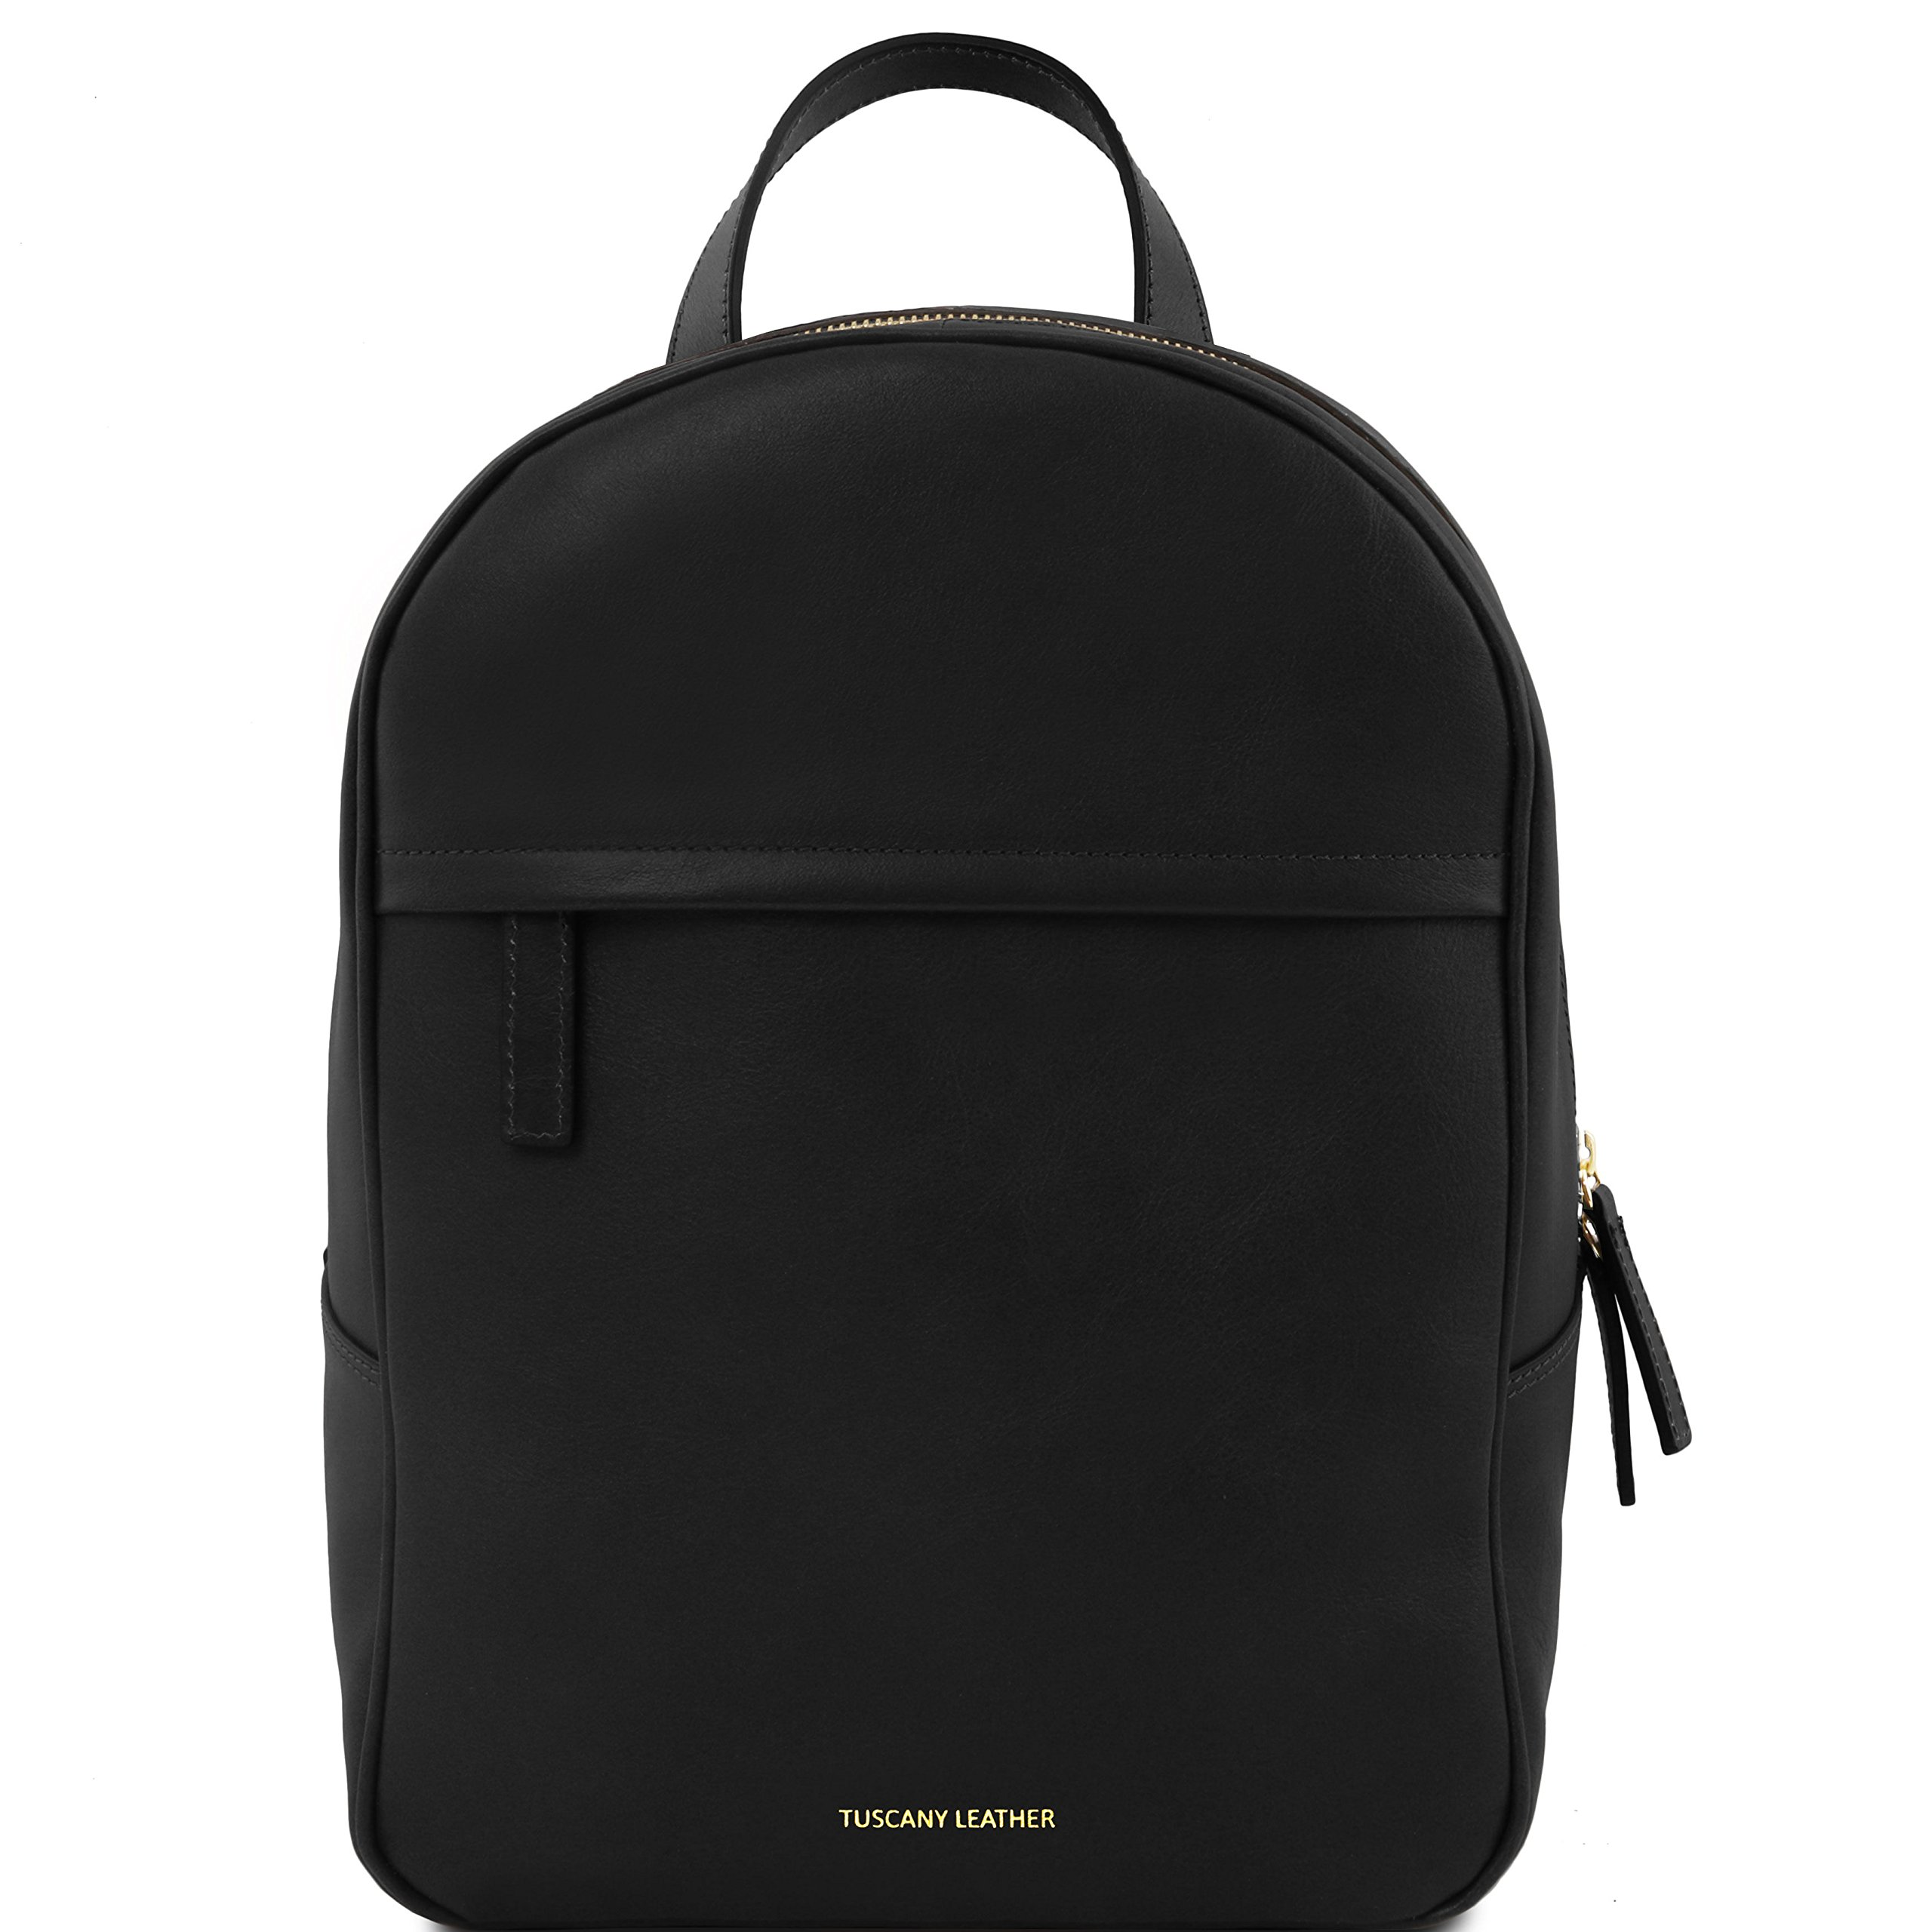 Tuscany Leather TL Bag Leather backpack for women Black